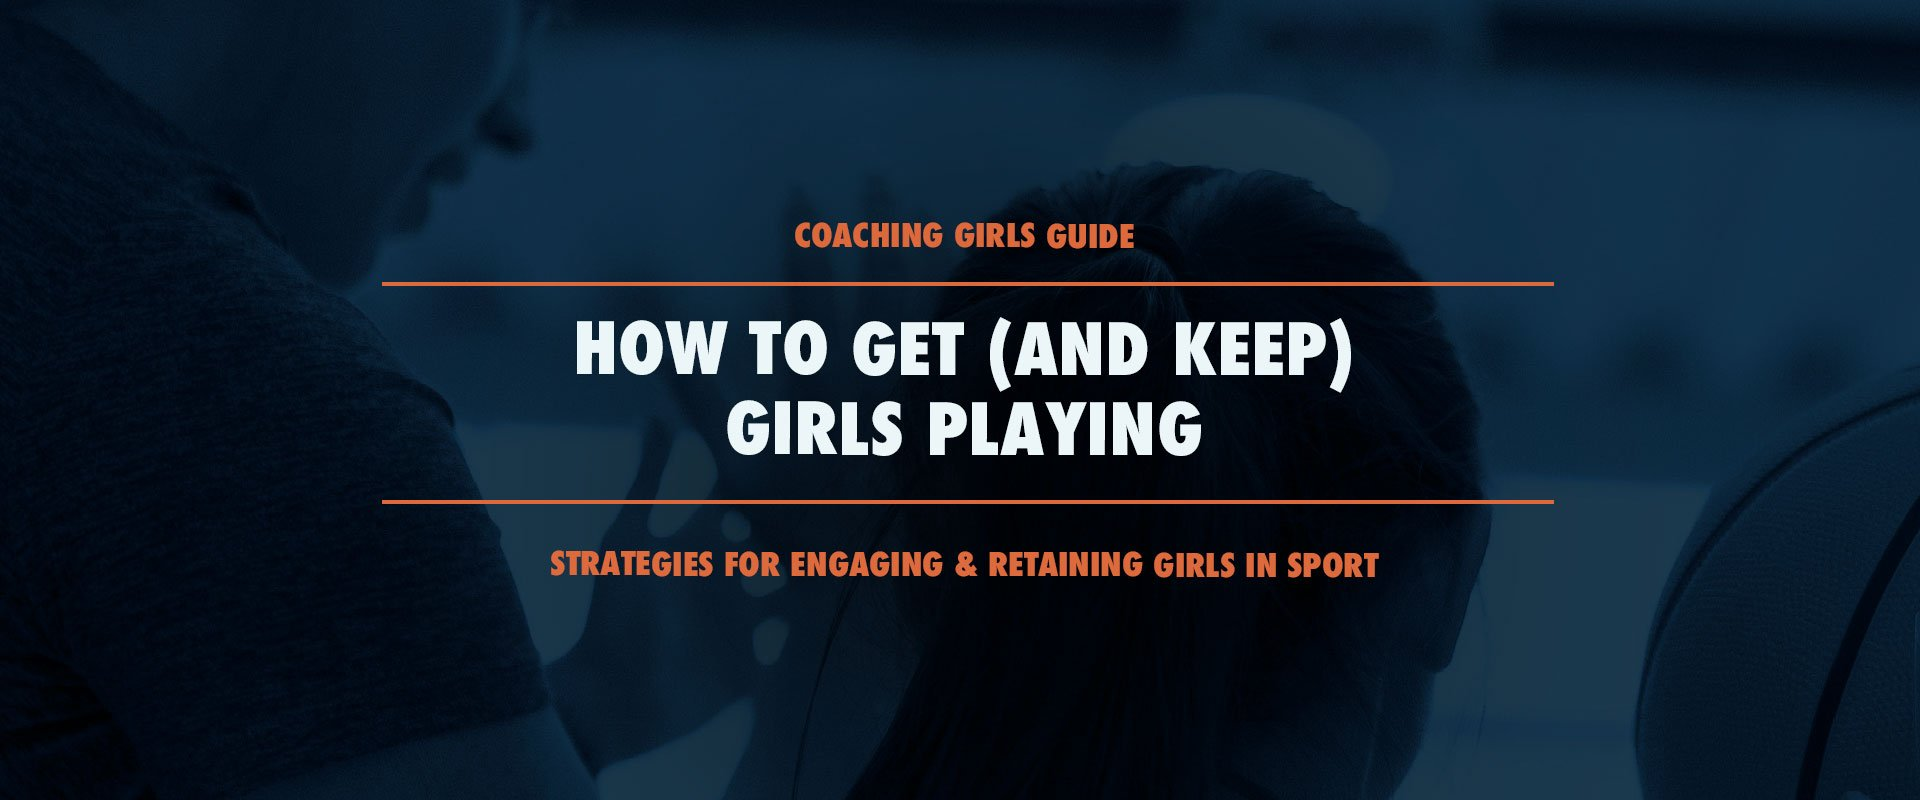 HOW TO COACH GIRLS ENG